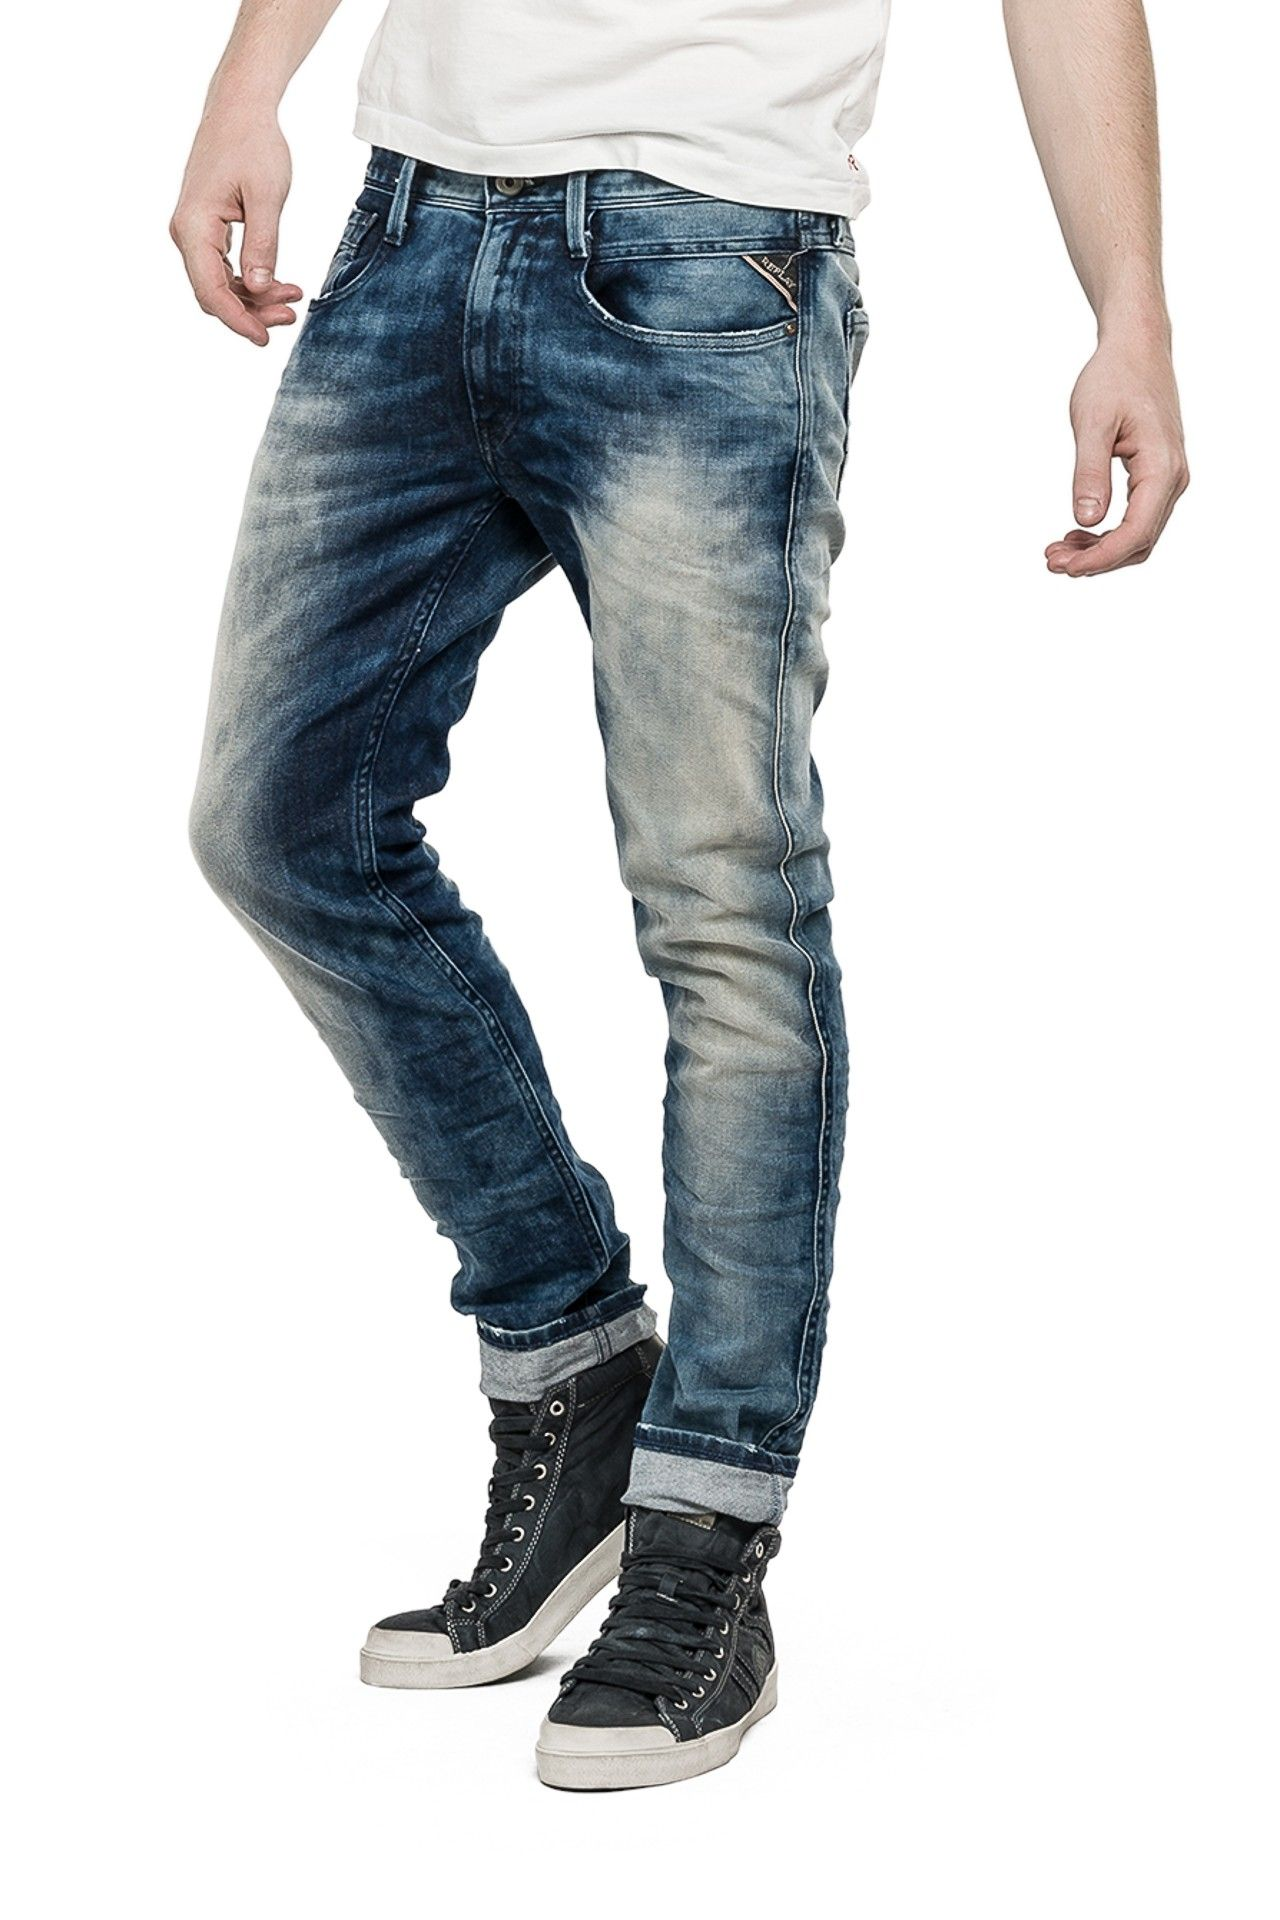 ec43d695702 Replay jeans | Clothes | Denim jeans men, Replay jeans, Ripped jeans men